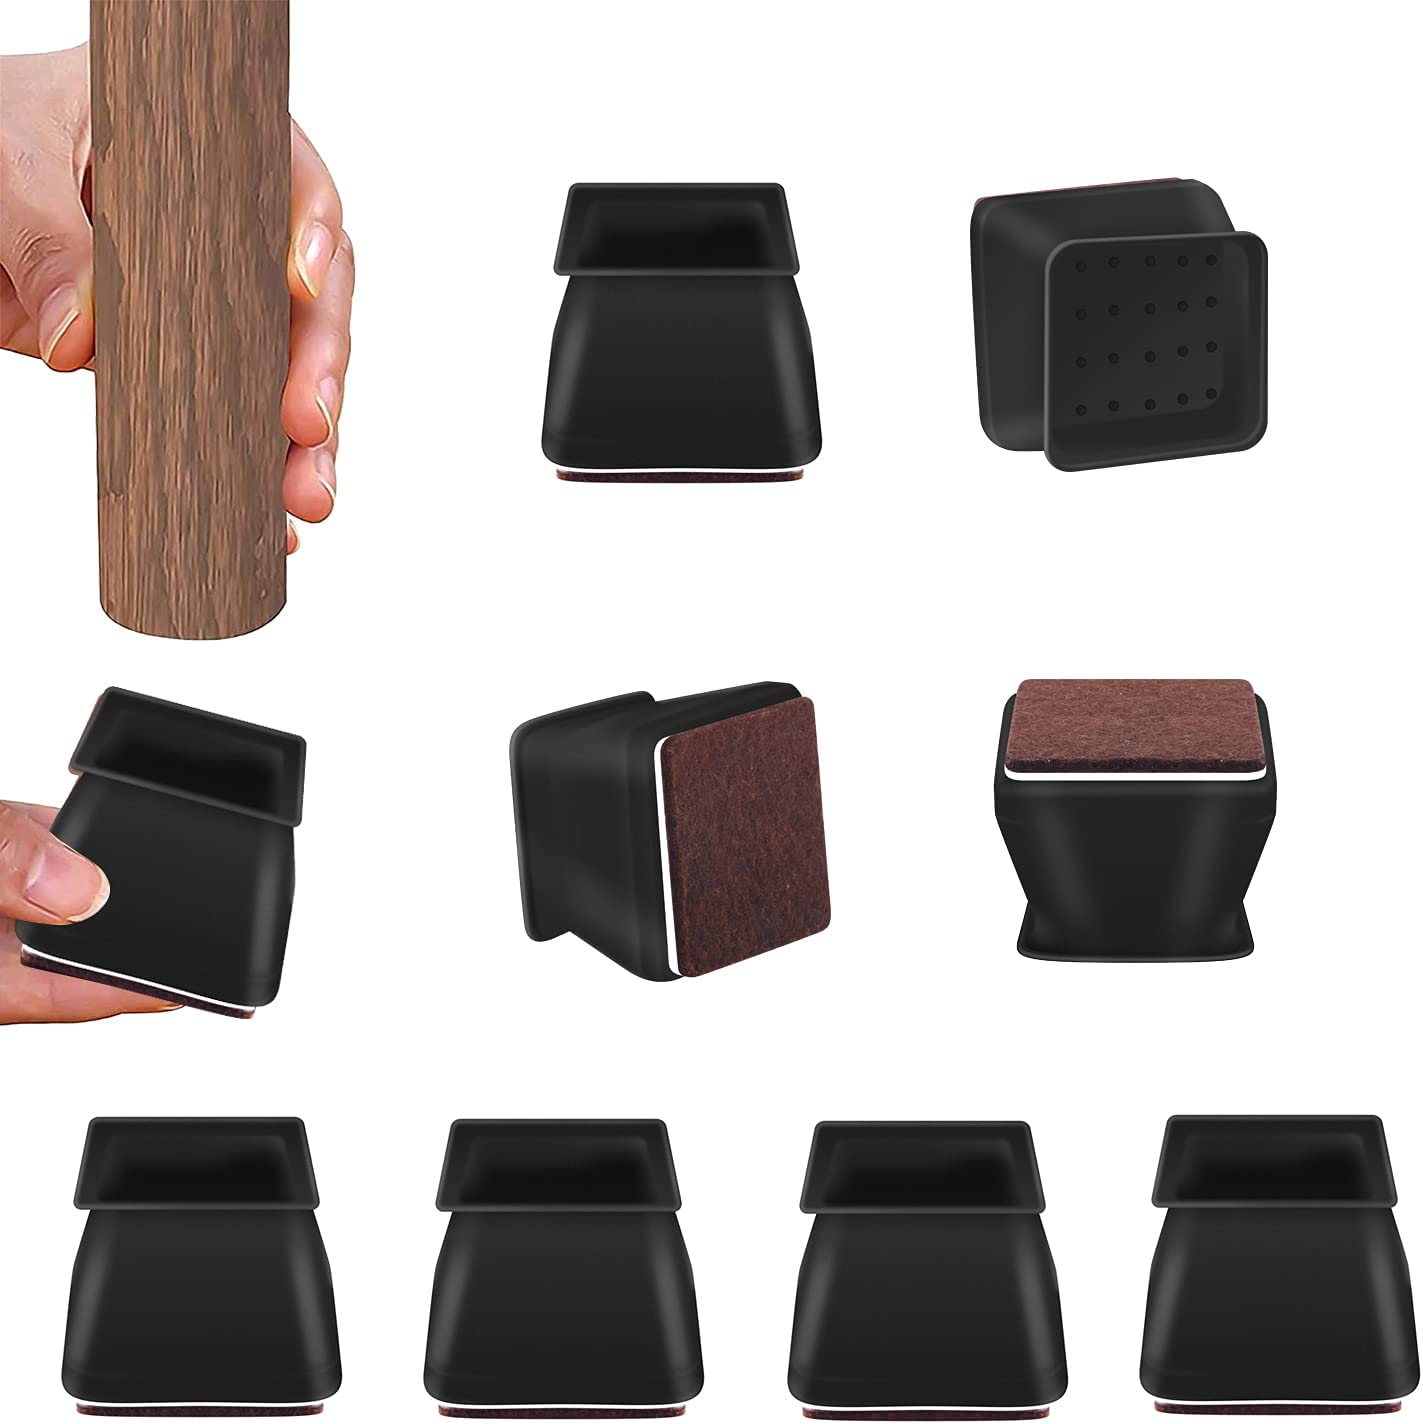 Chair Leg Floor Protectors Square Silicone, Furniture Pads Non Slip for Hardwood Tile Floors, Free Moving Covers for Ding Chair Carpet and Outdoor Furniture (32 Pcs, Black)